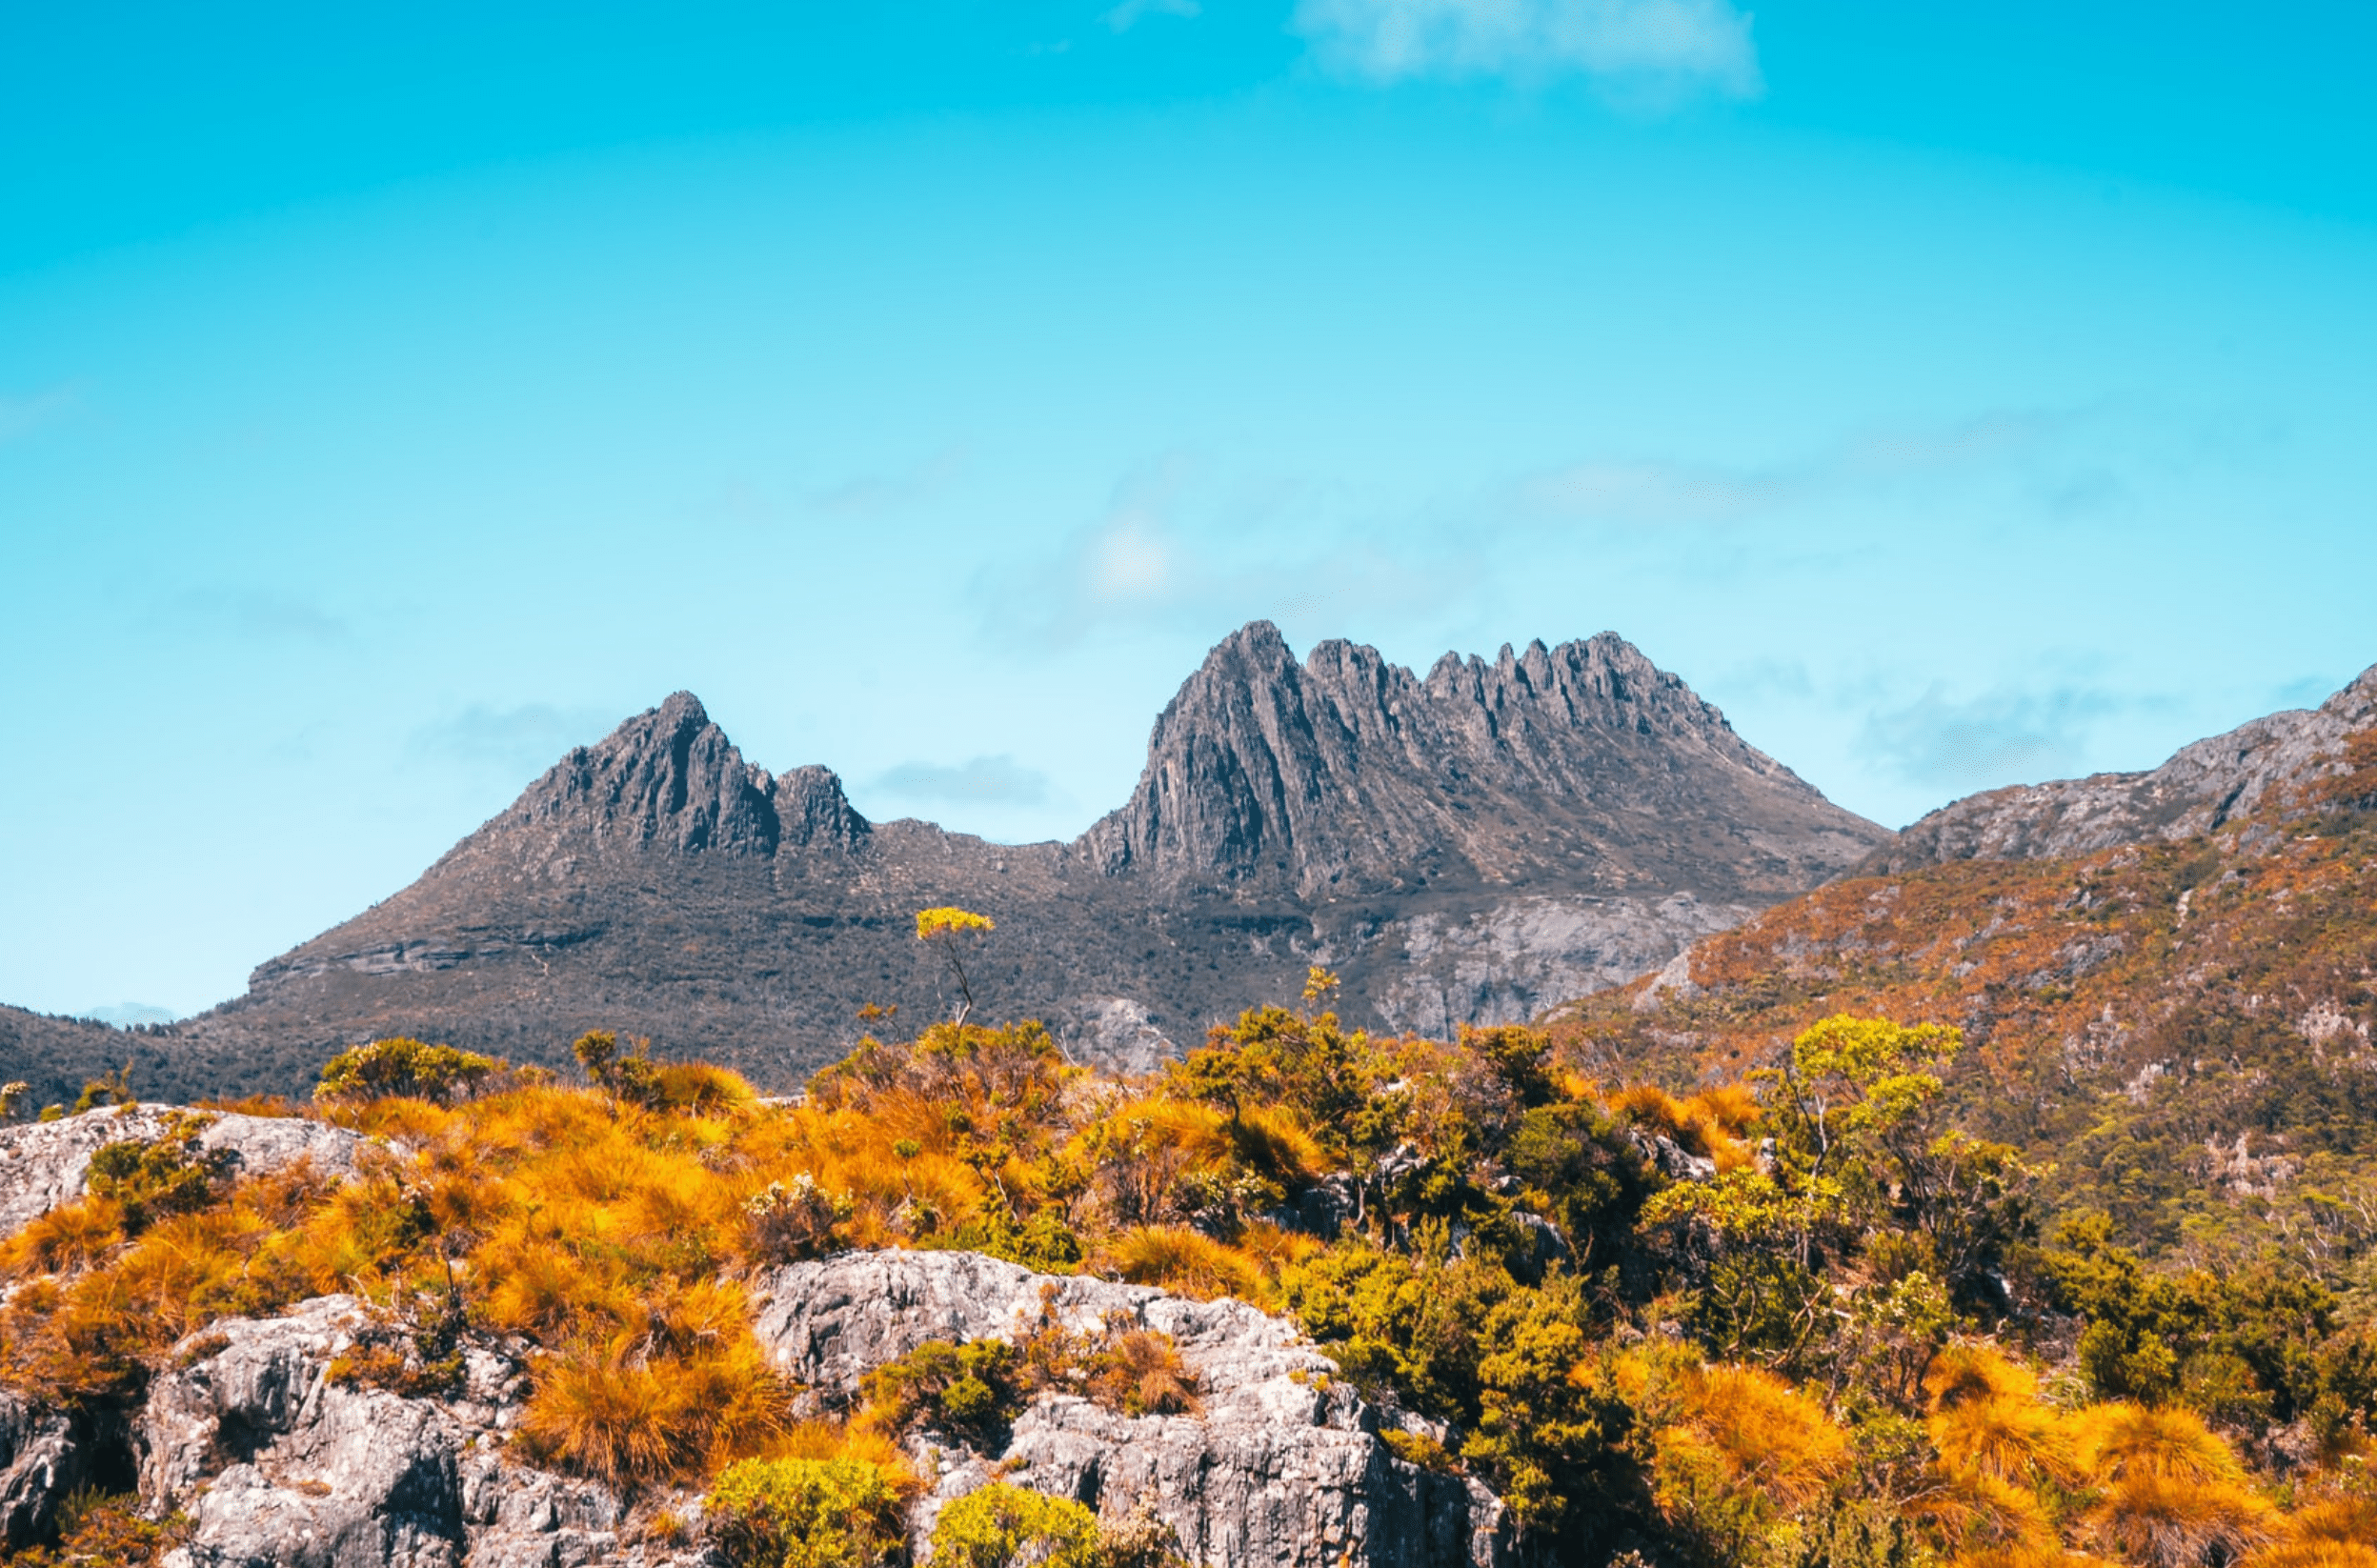 A 5 Day Tasmania Road Trip Itinerary (For Outdoor Enthusiasts)